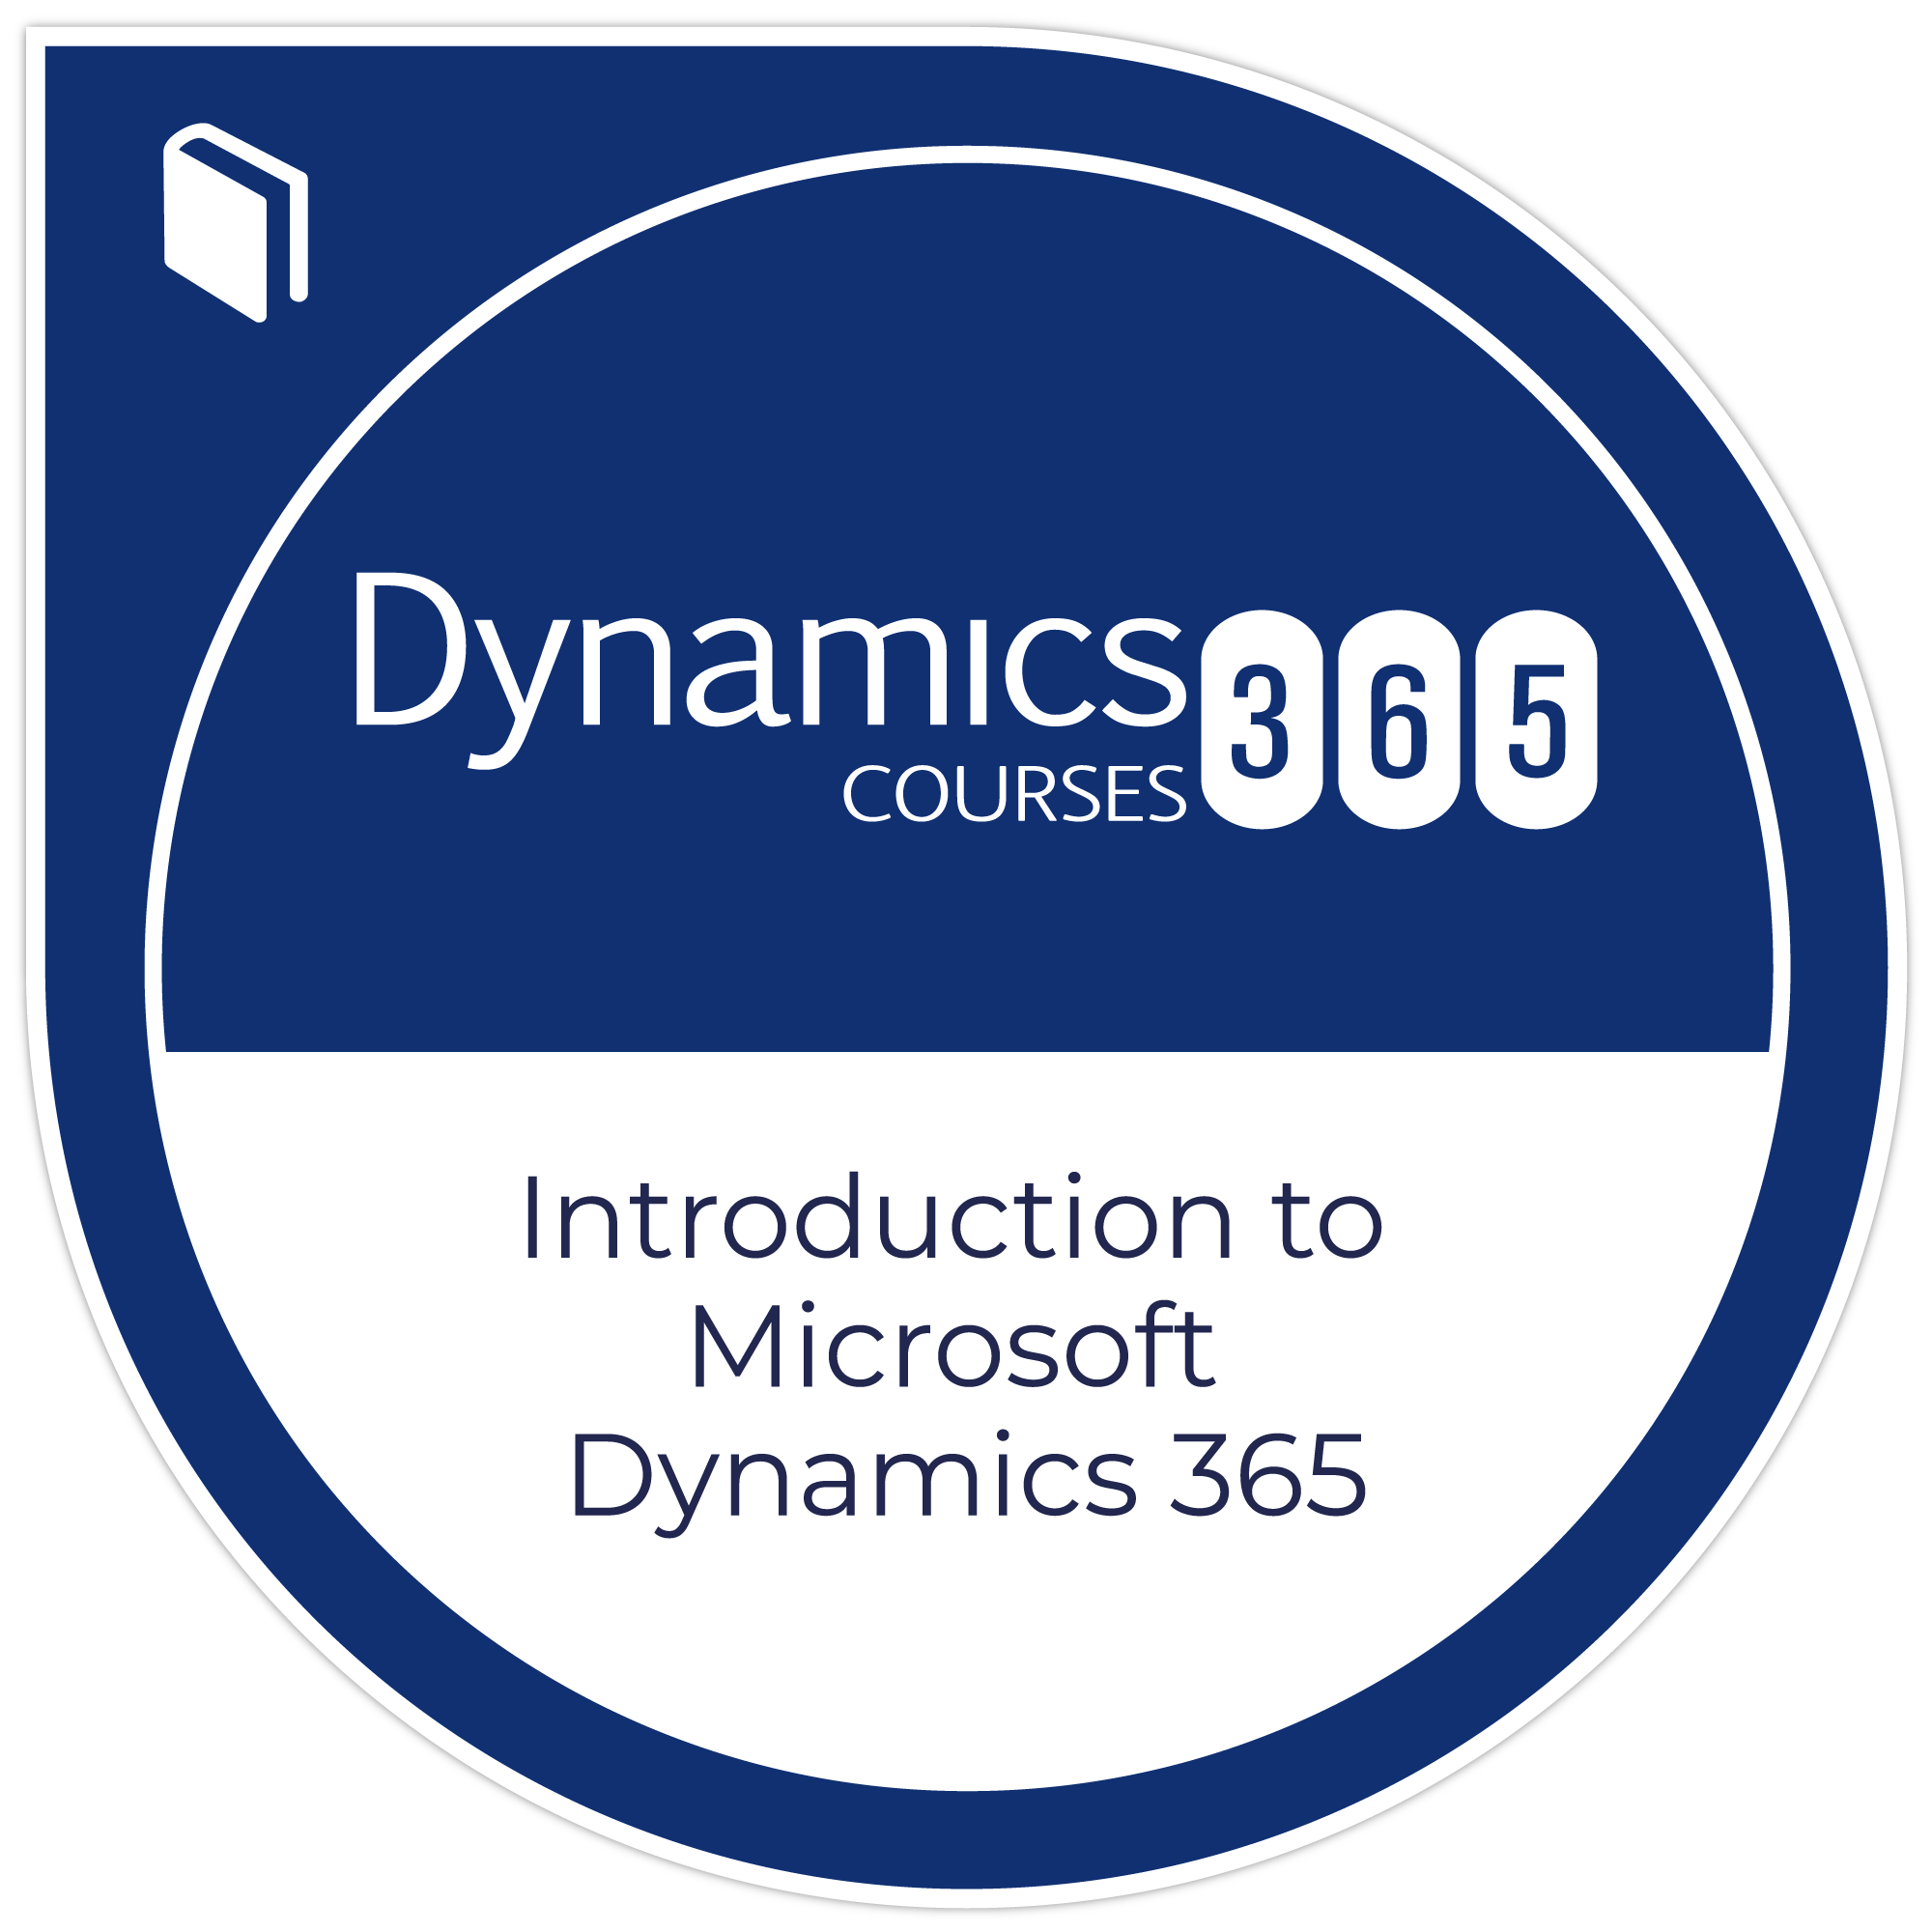 Introduction to Microsoft Dynamics 365